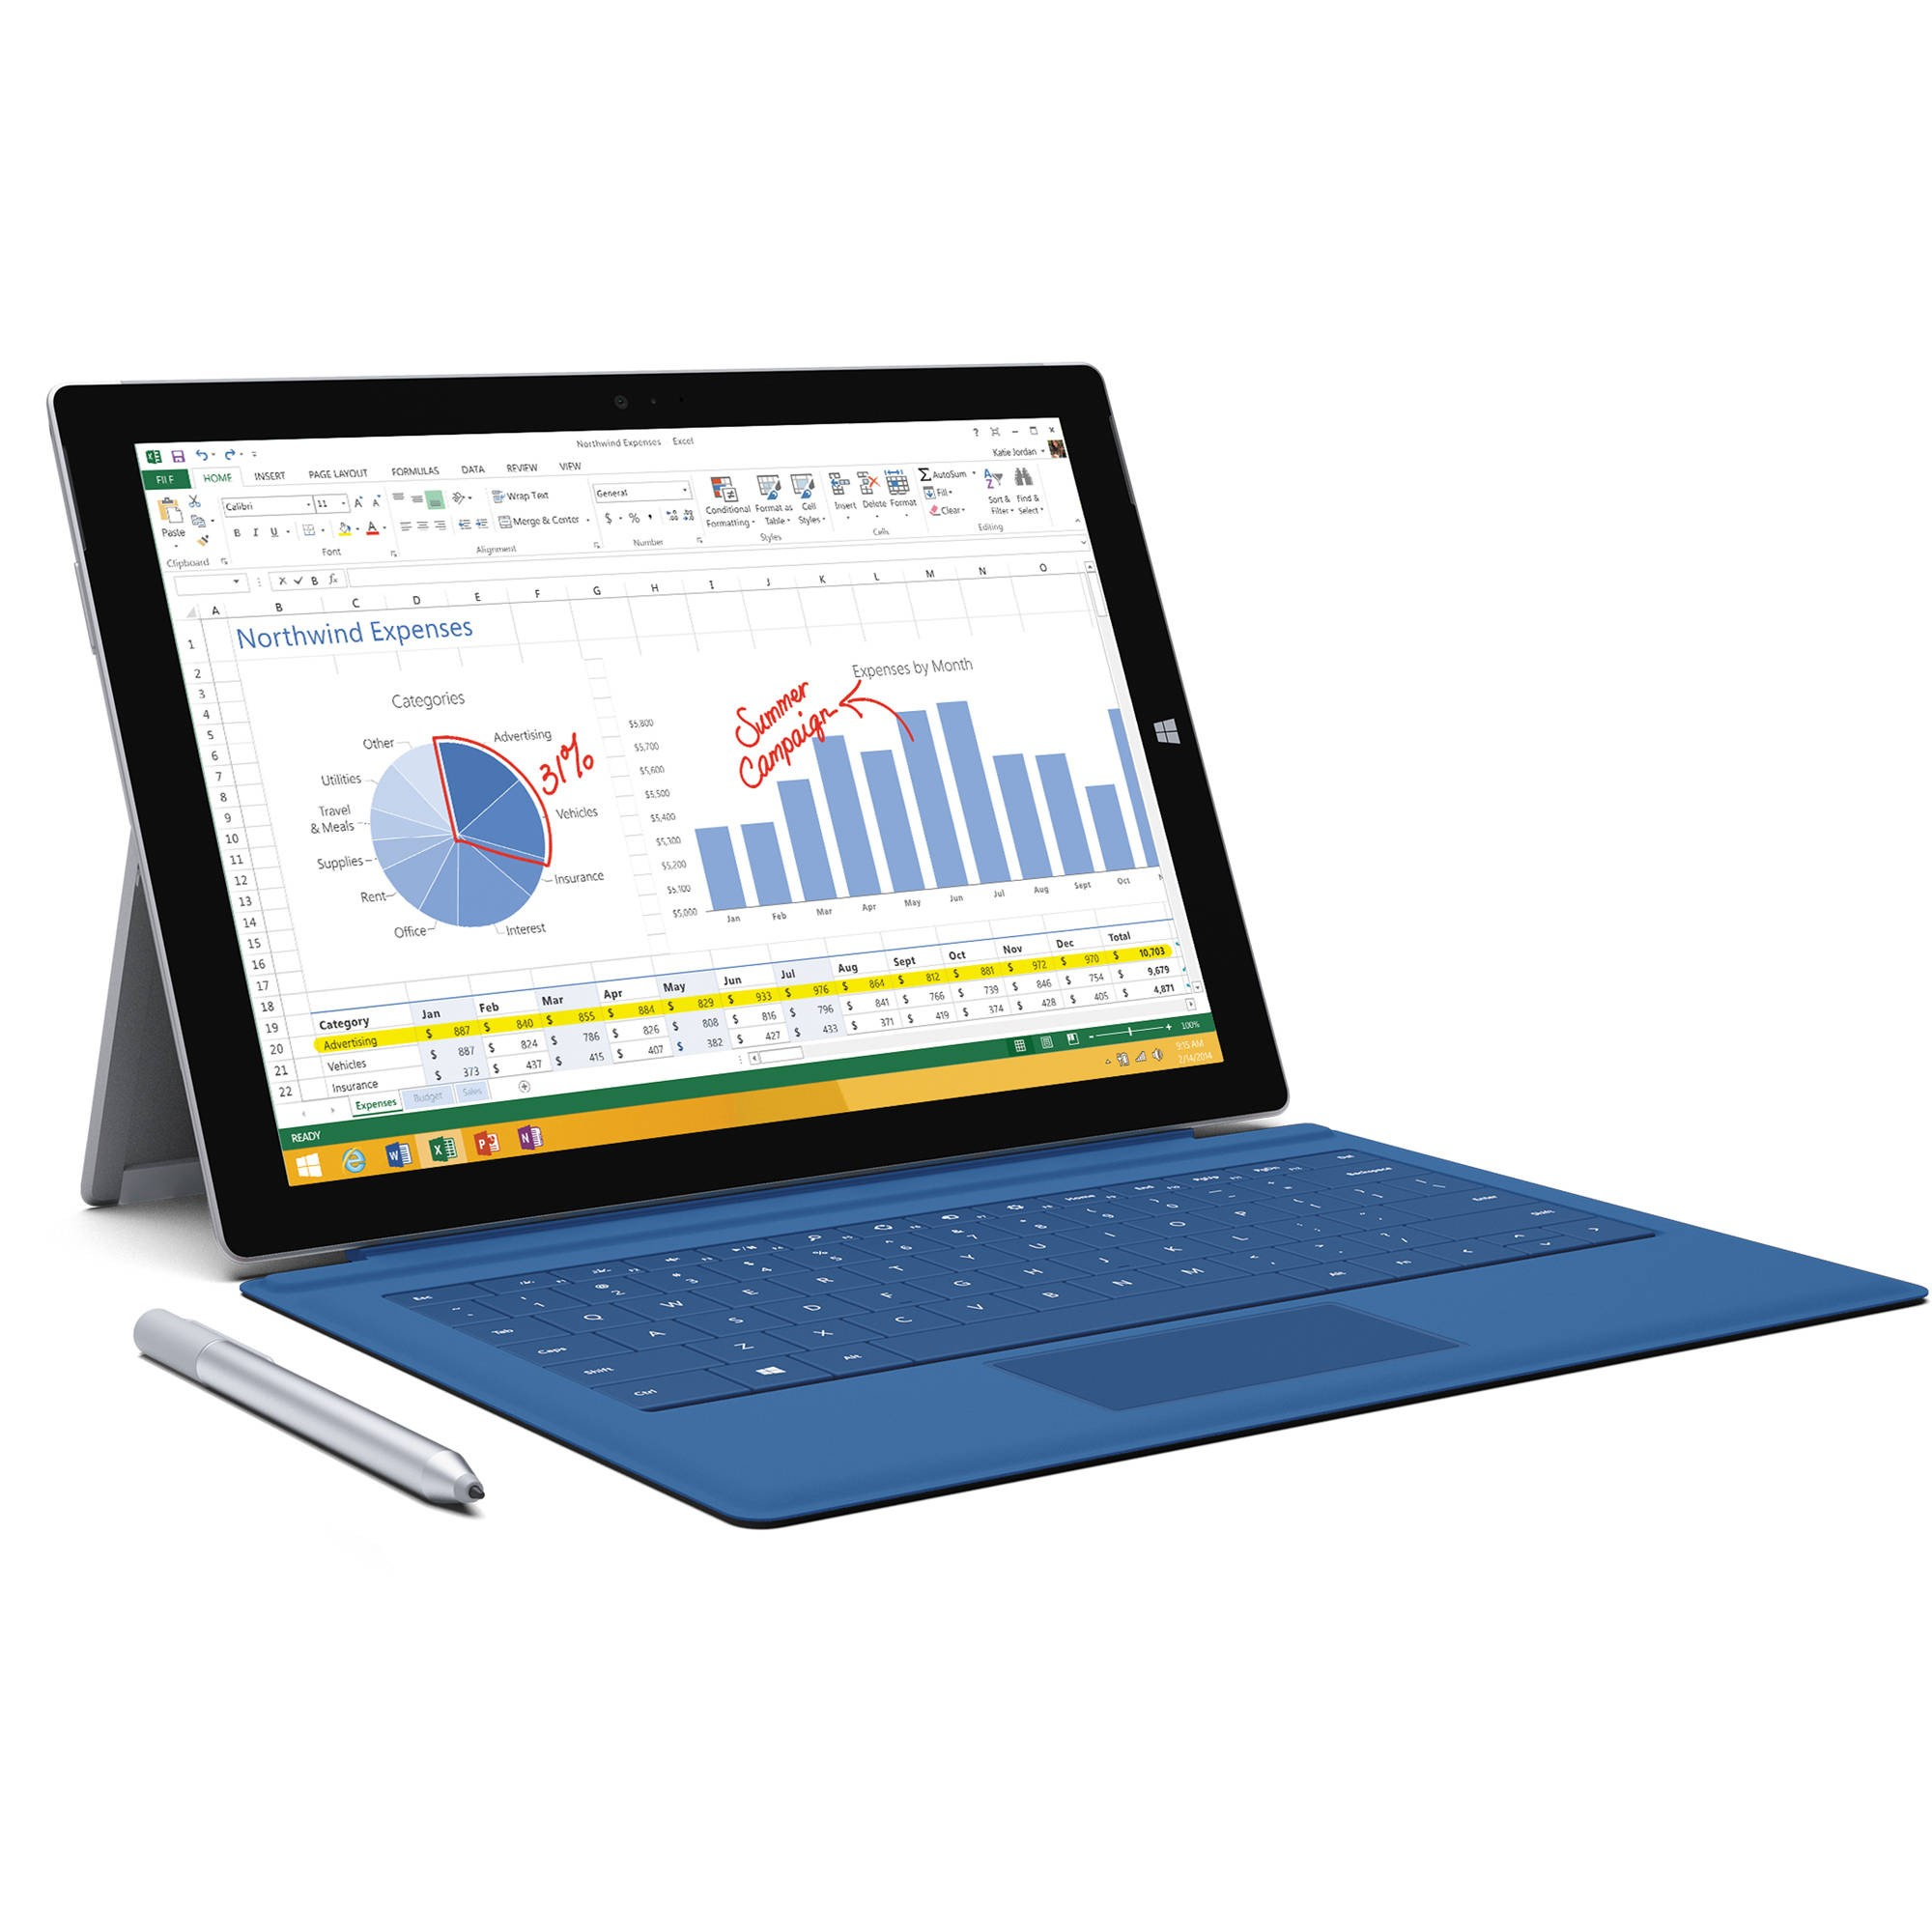 Microsoft Surface Pro 3 Parts